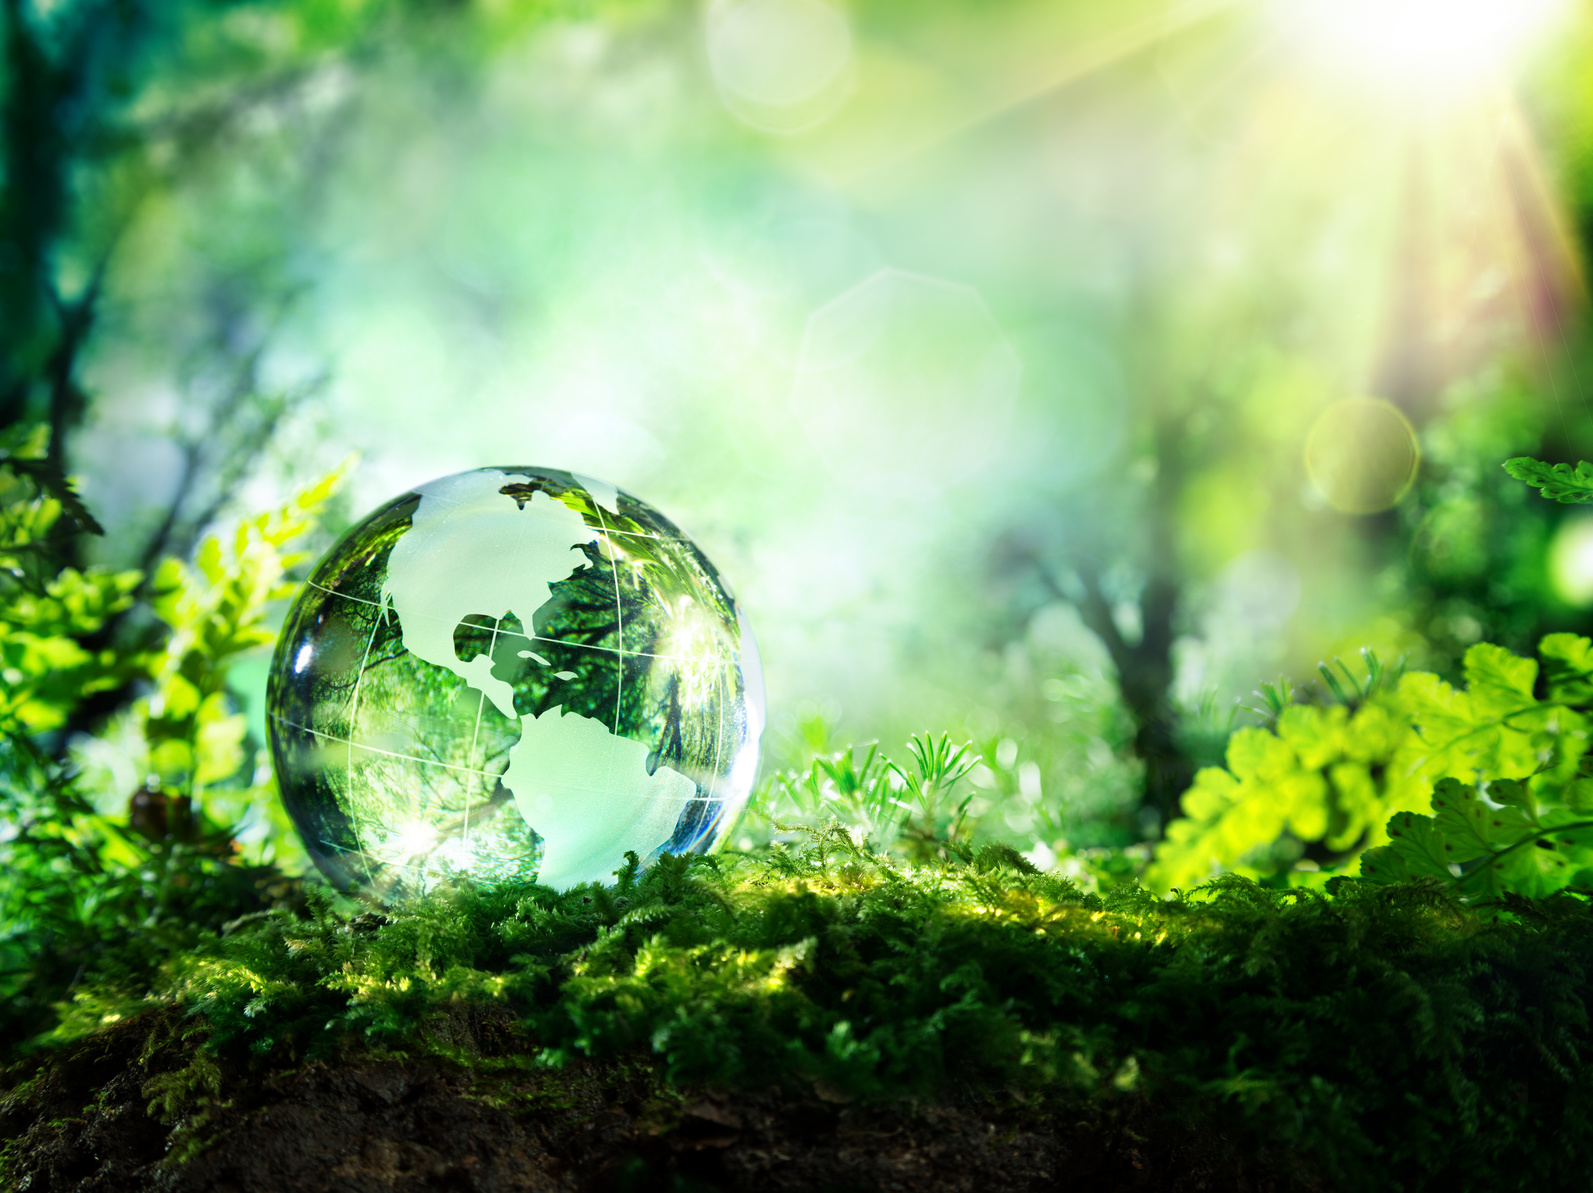 crystal globe on moss in a forest – environment concept